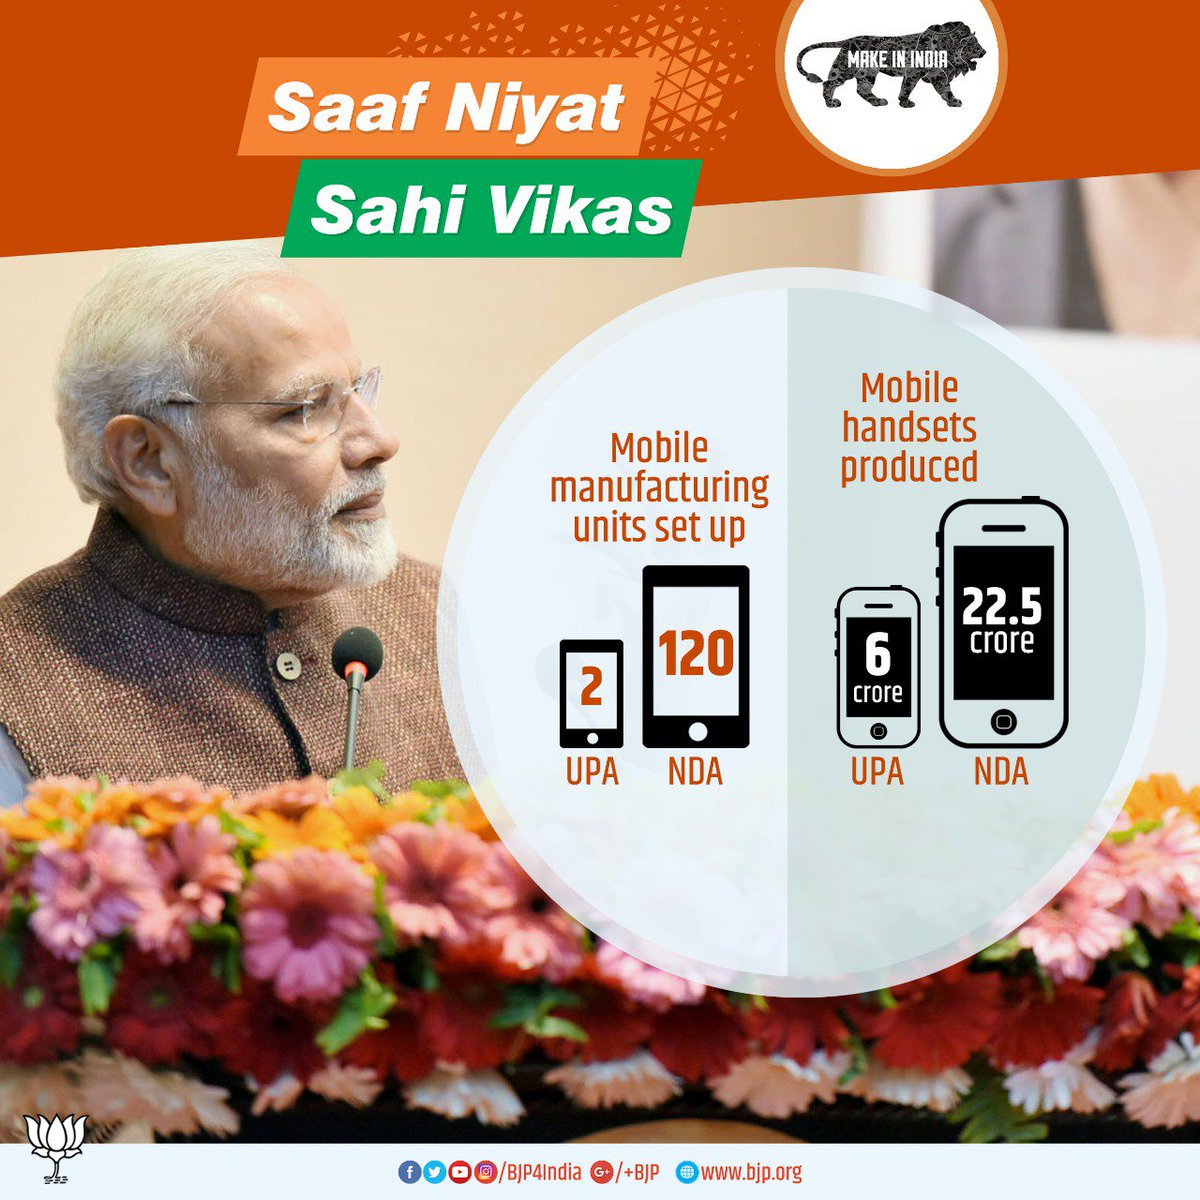 India become a major mobile phone manufacturing hub, number of mobile manufacturing units rose to 120 from only 2 units in 2014. #SaafNiyatSahiVikas